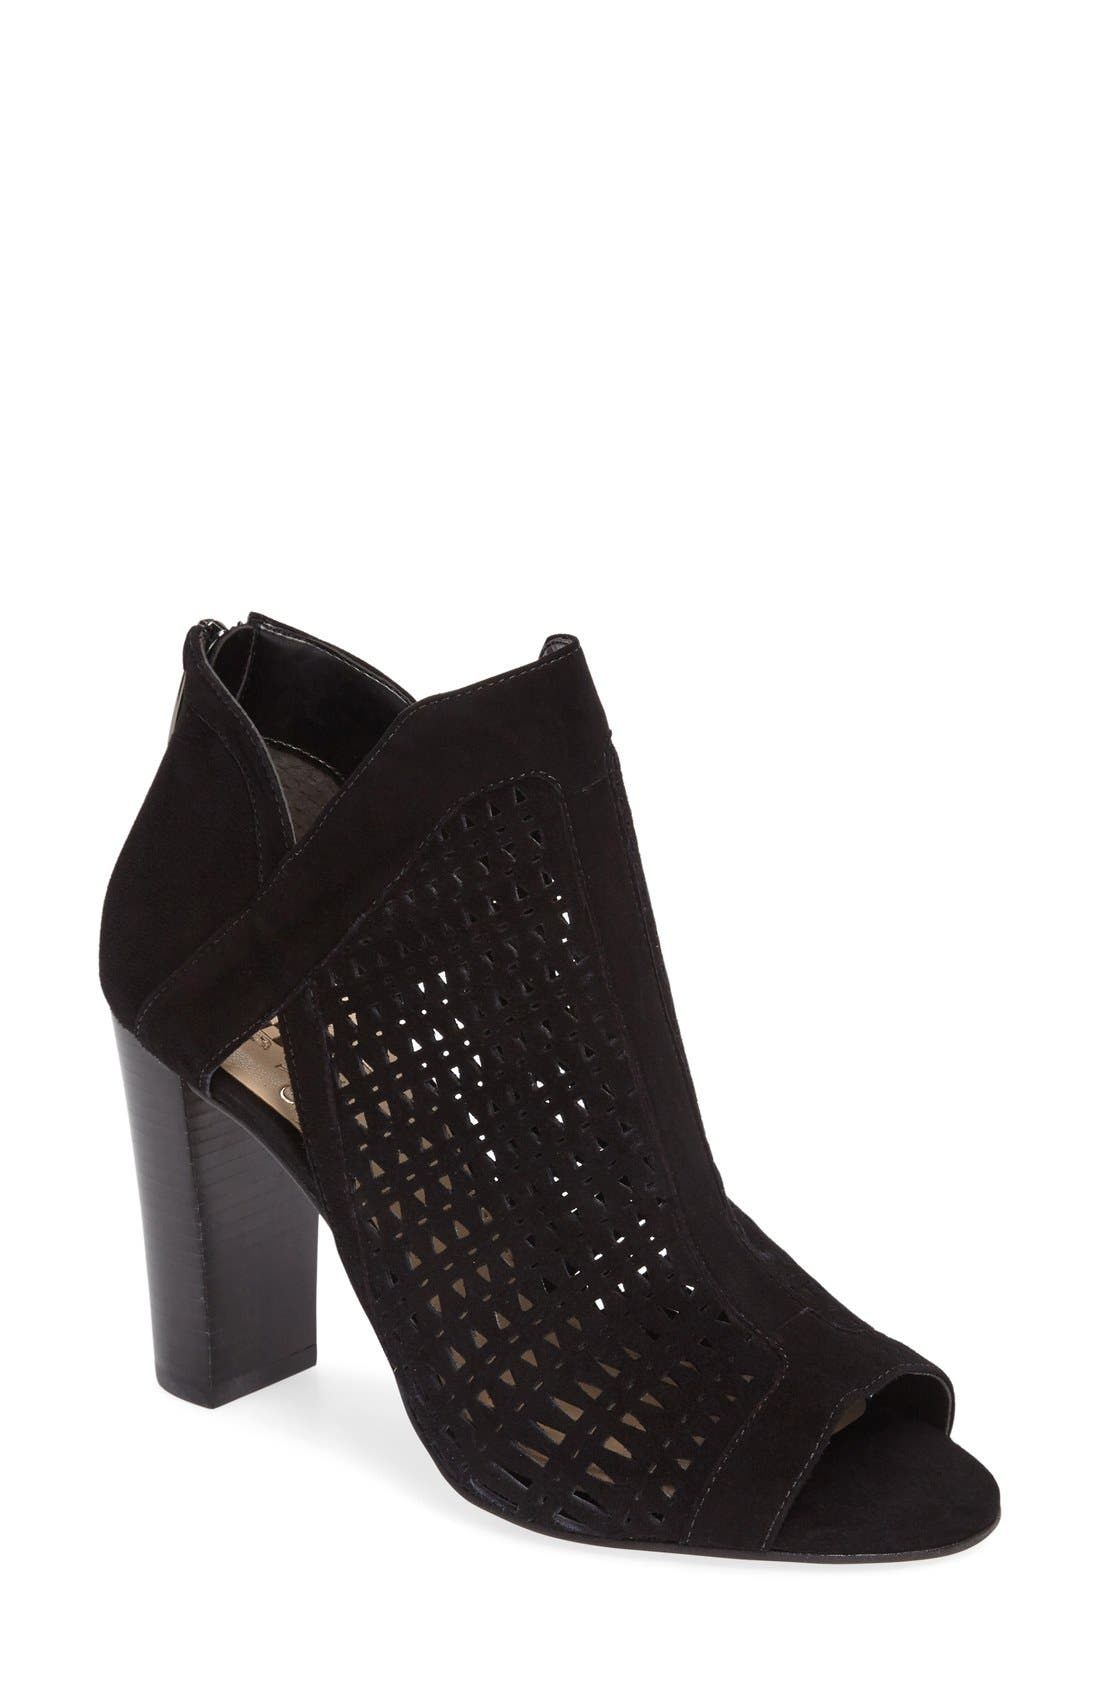 Main Image - Vince Camuto Cranita Perforated Bootie (Women)